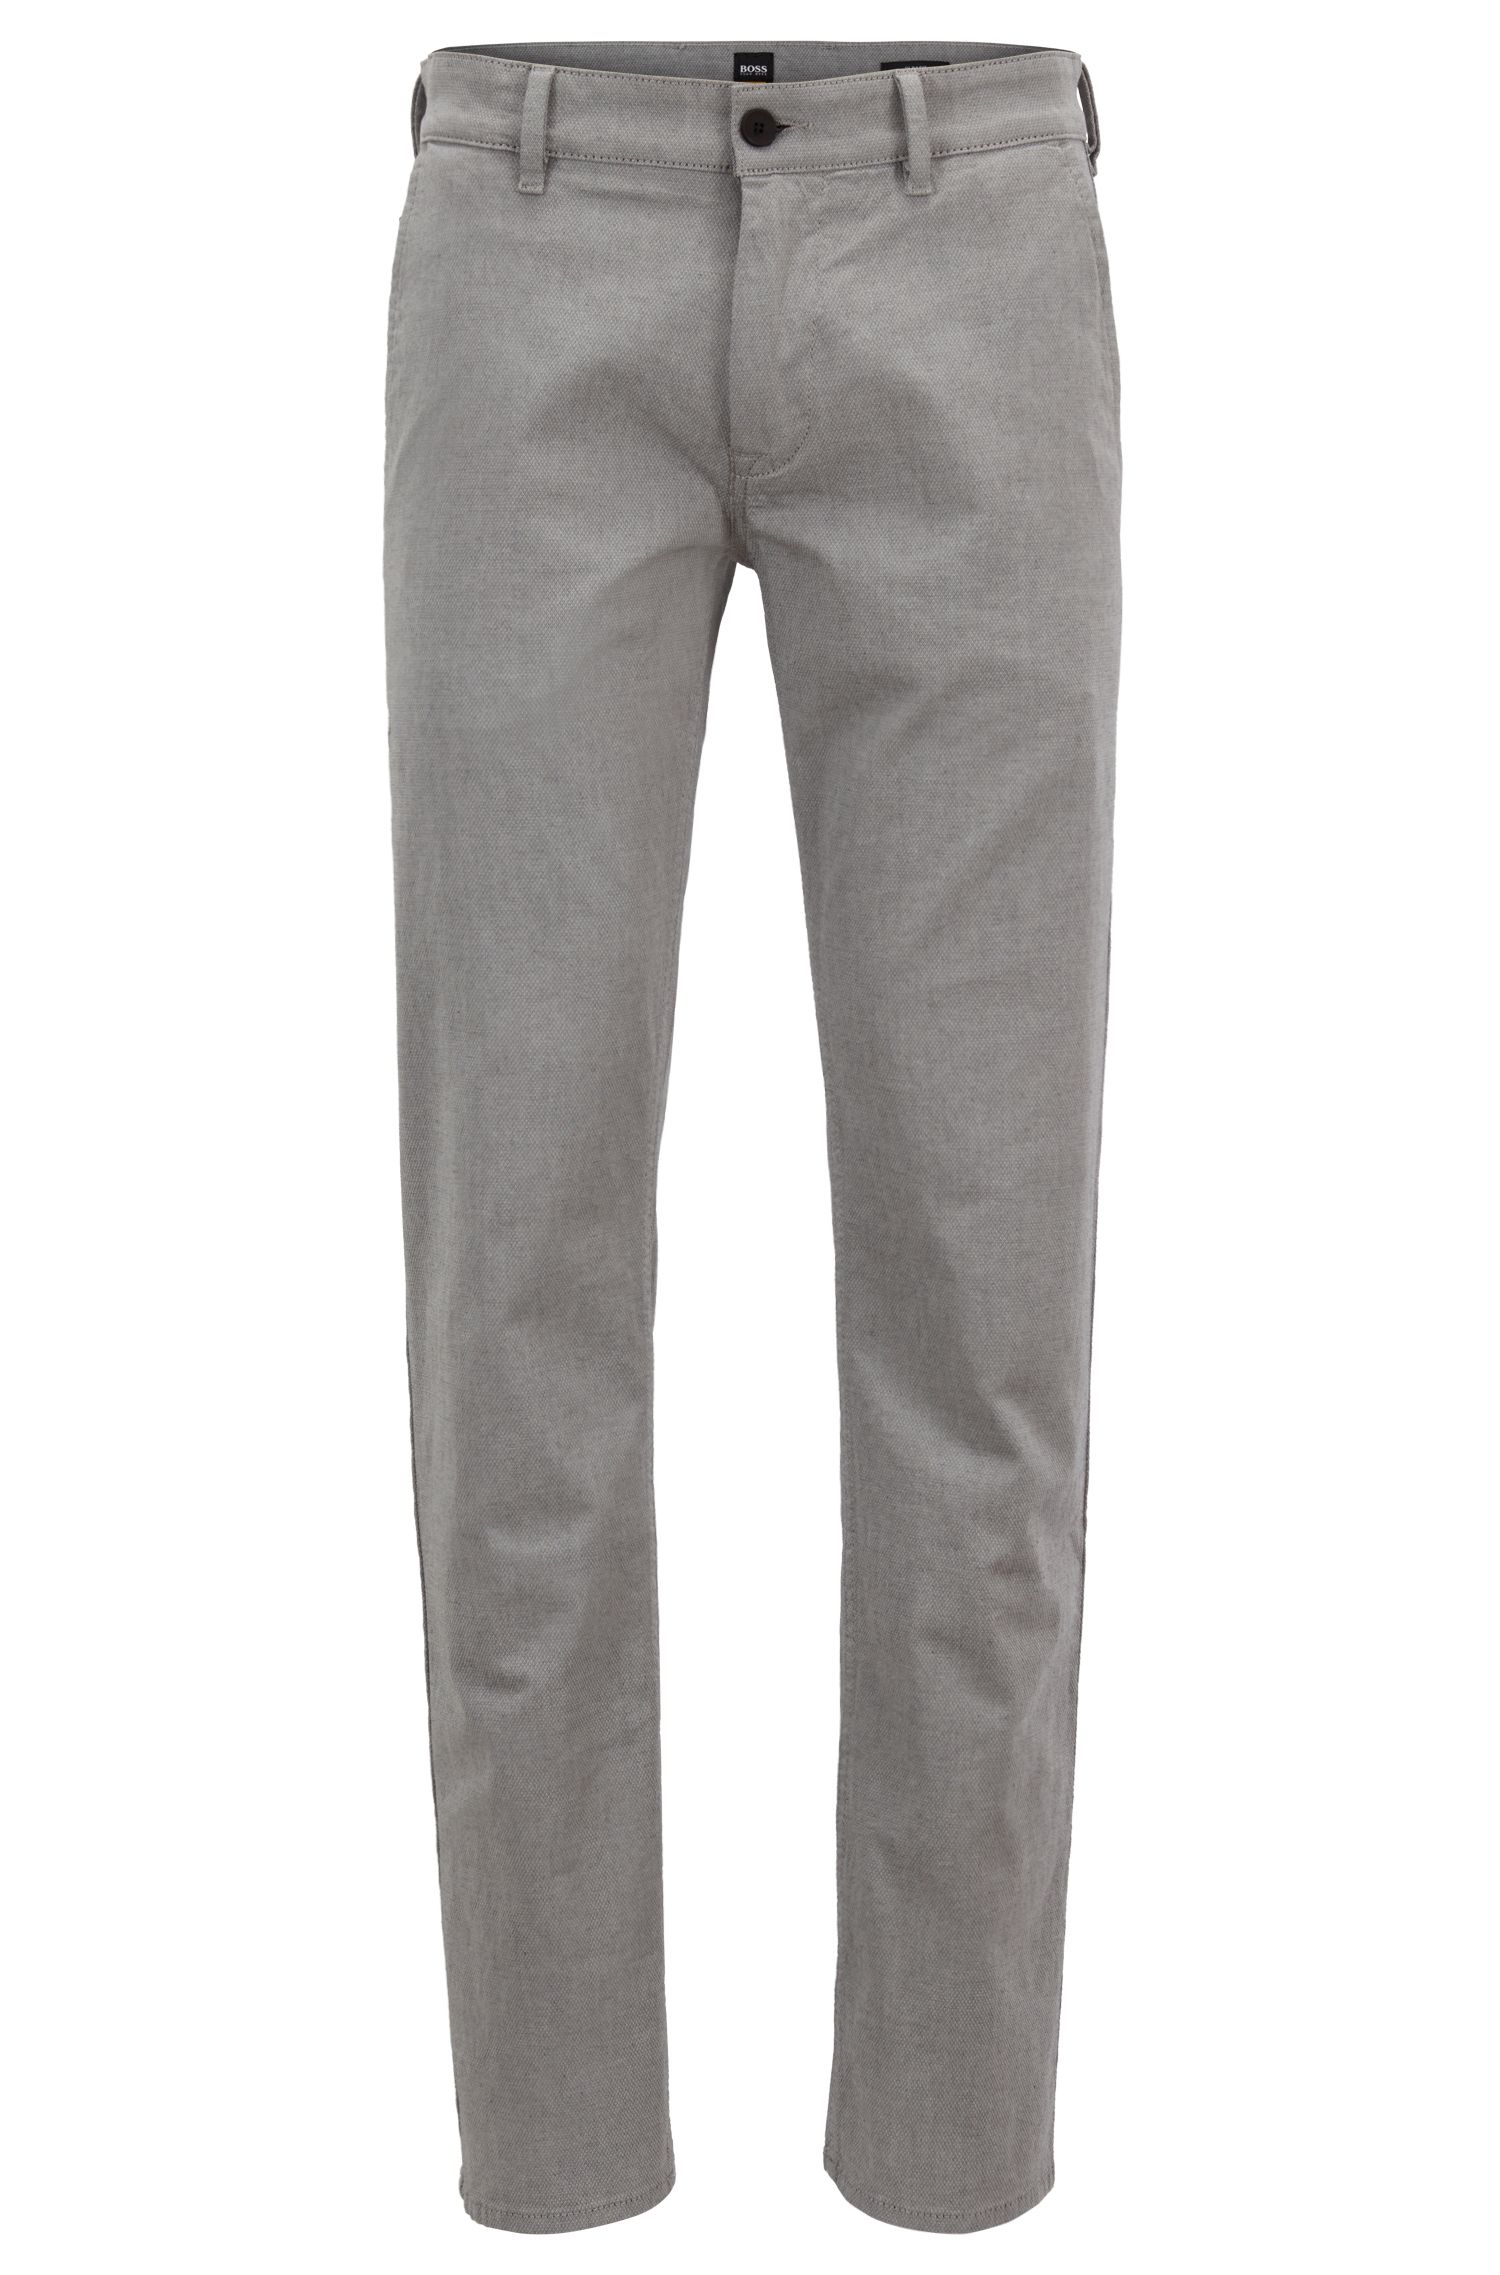 Pantalon Slim Fit en coton stretch microstructuré